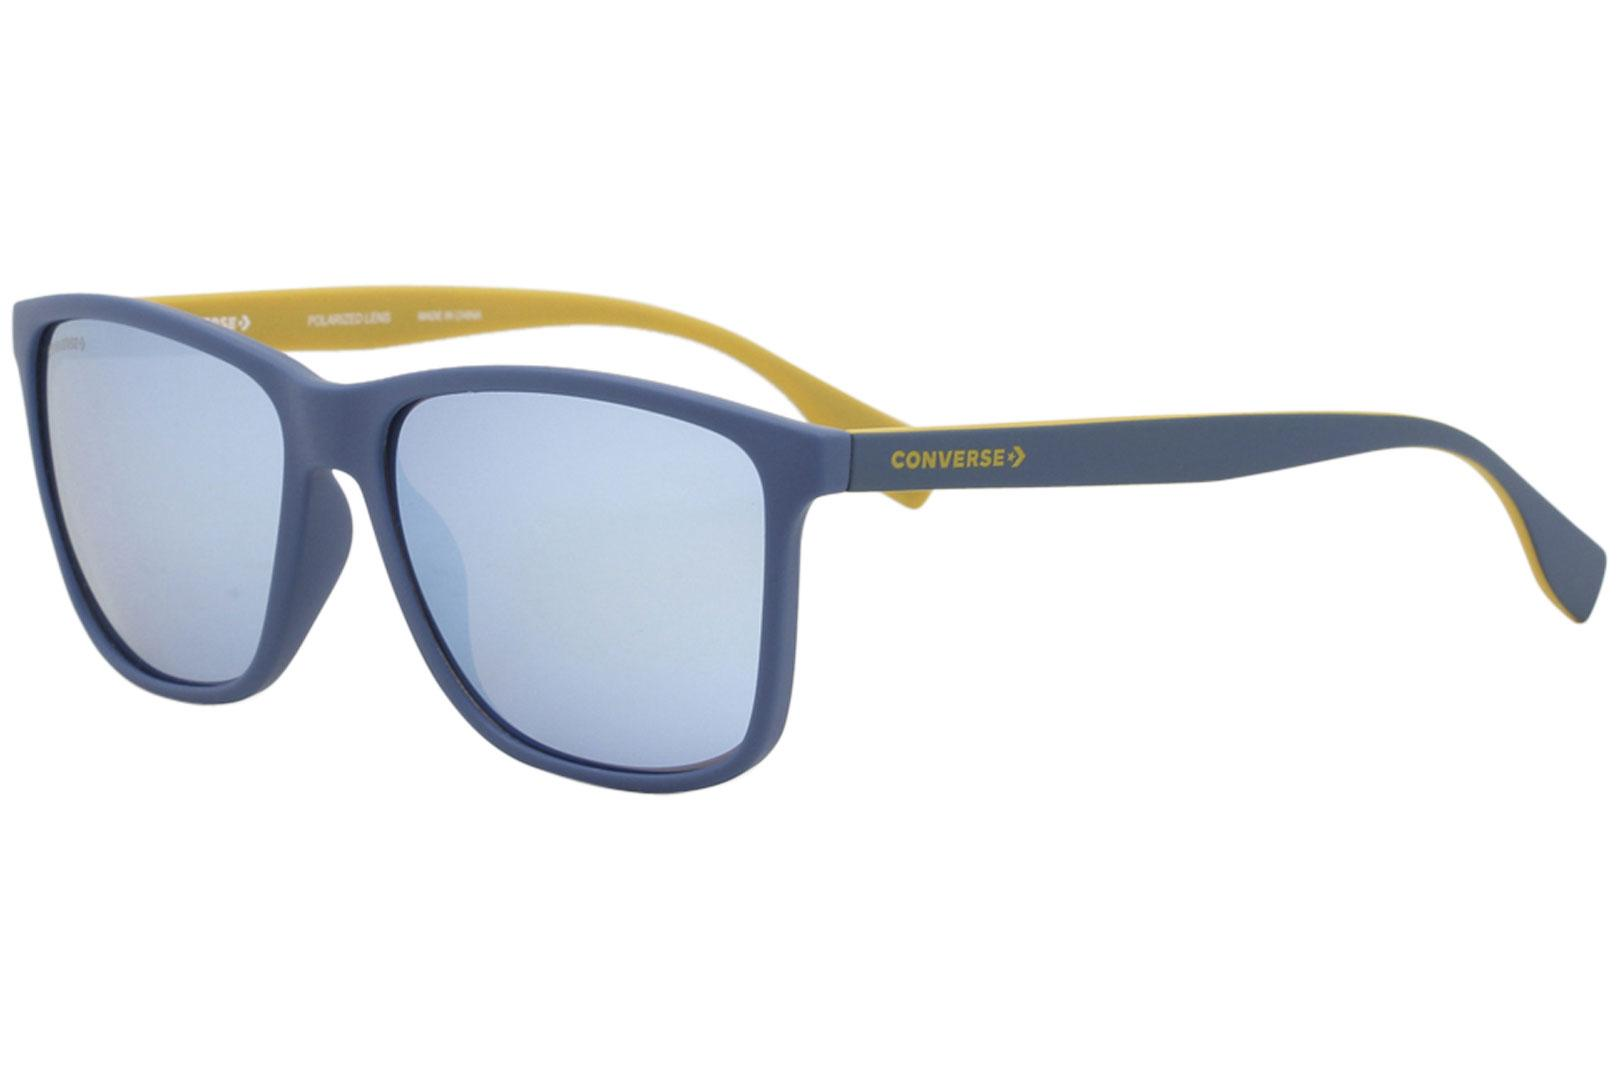 a4be701a951 ... Polarized Fashion Rectangle Sunglasses by Converse. Touch to zoom